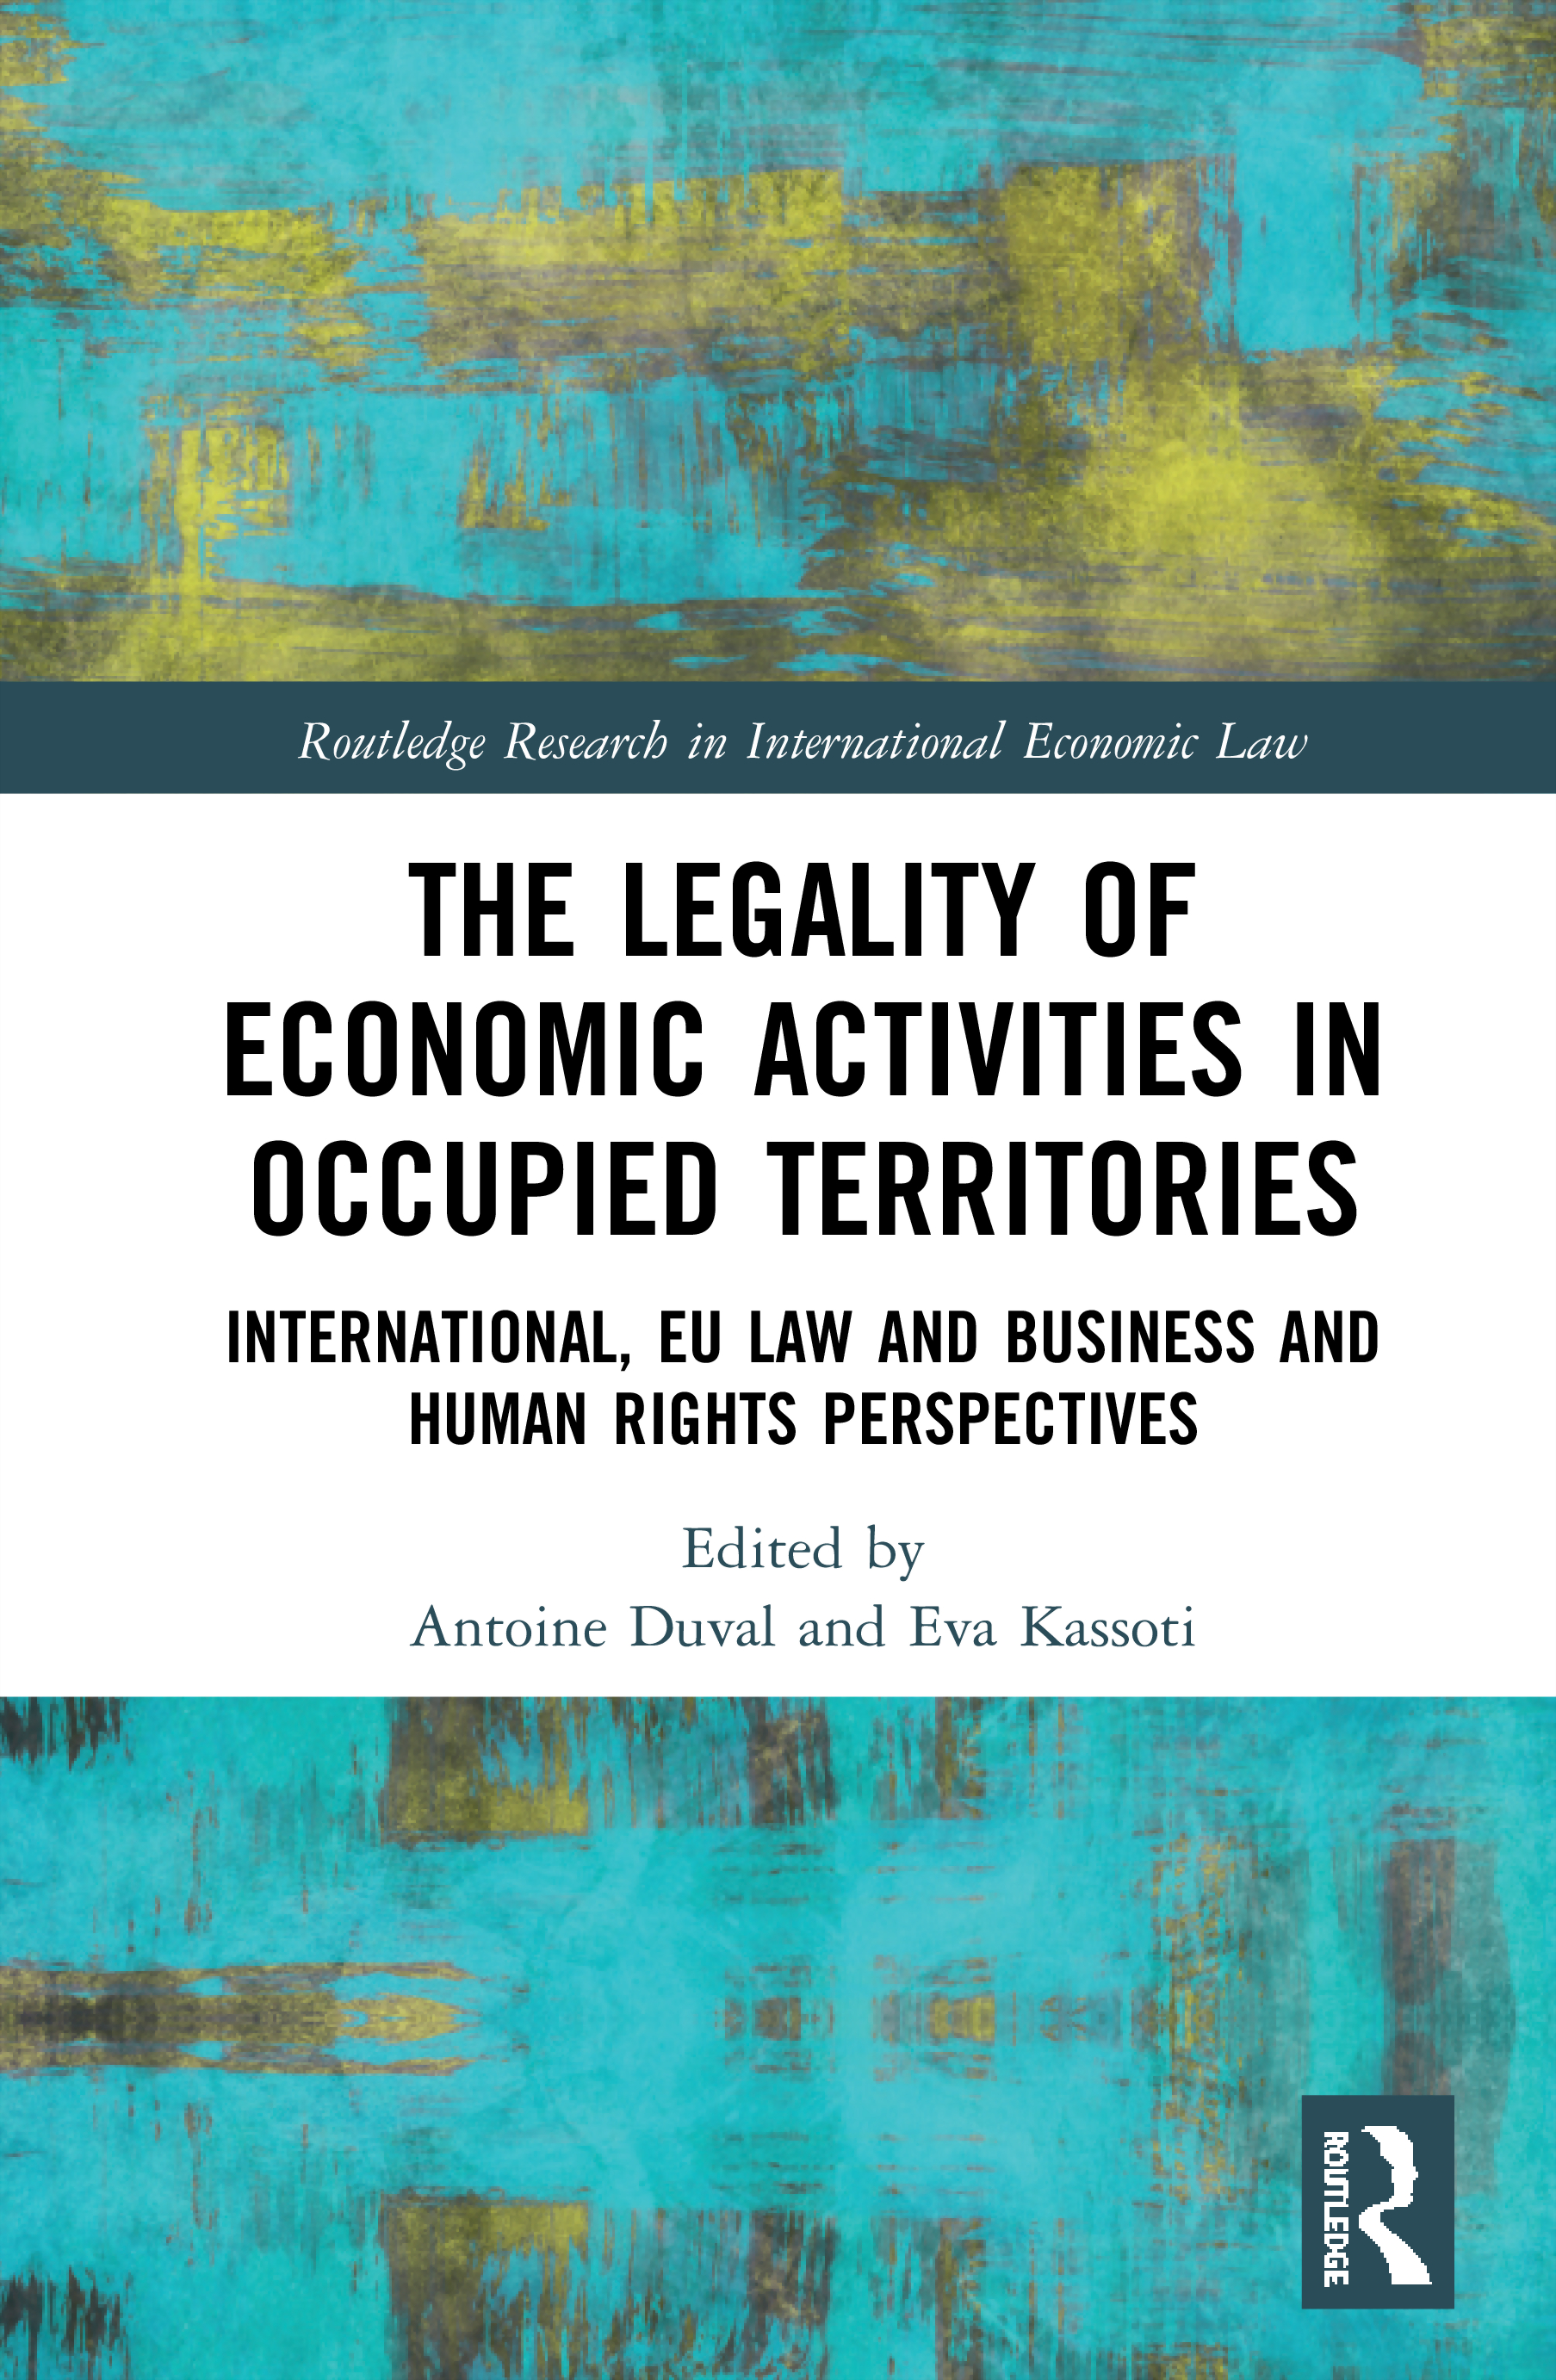 The Legality of Economic Activities in Occupied Territories: International, EU Law and Business and Human Rights Perspectives book cover